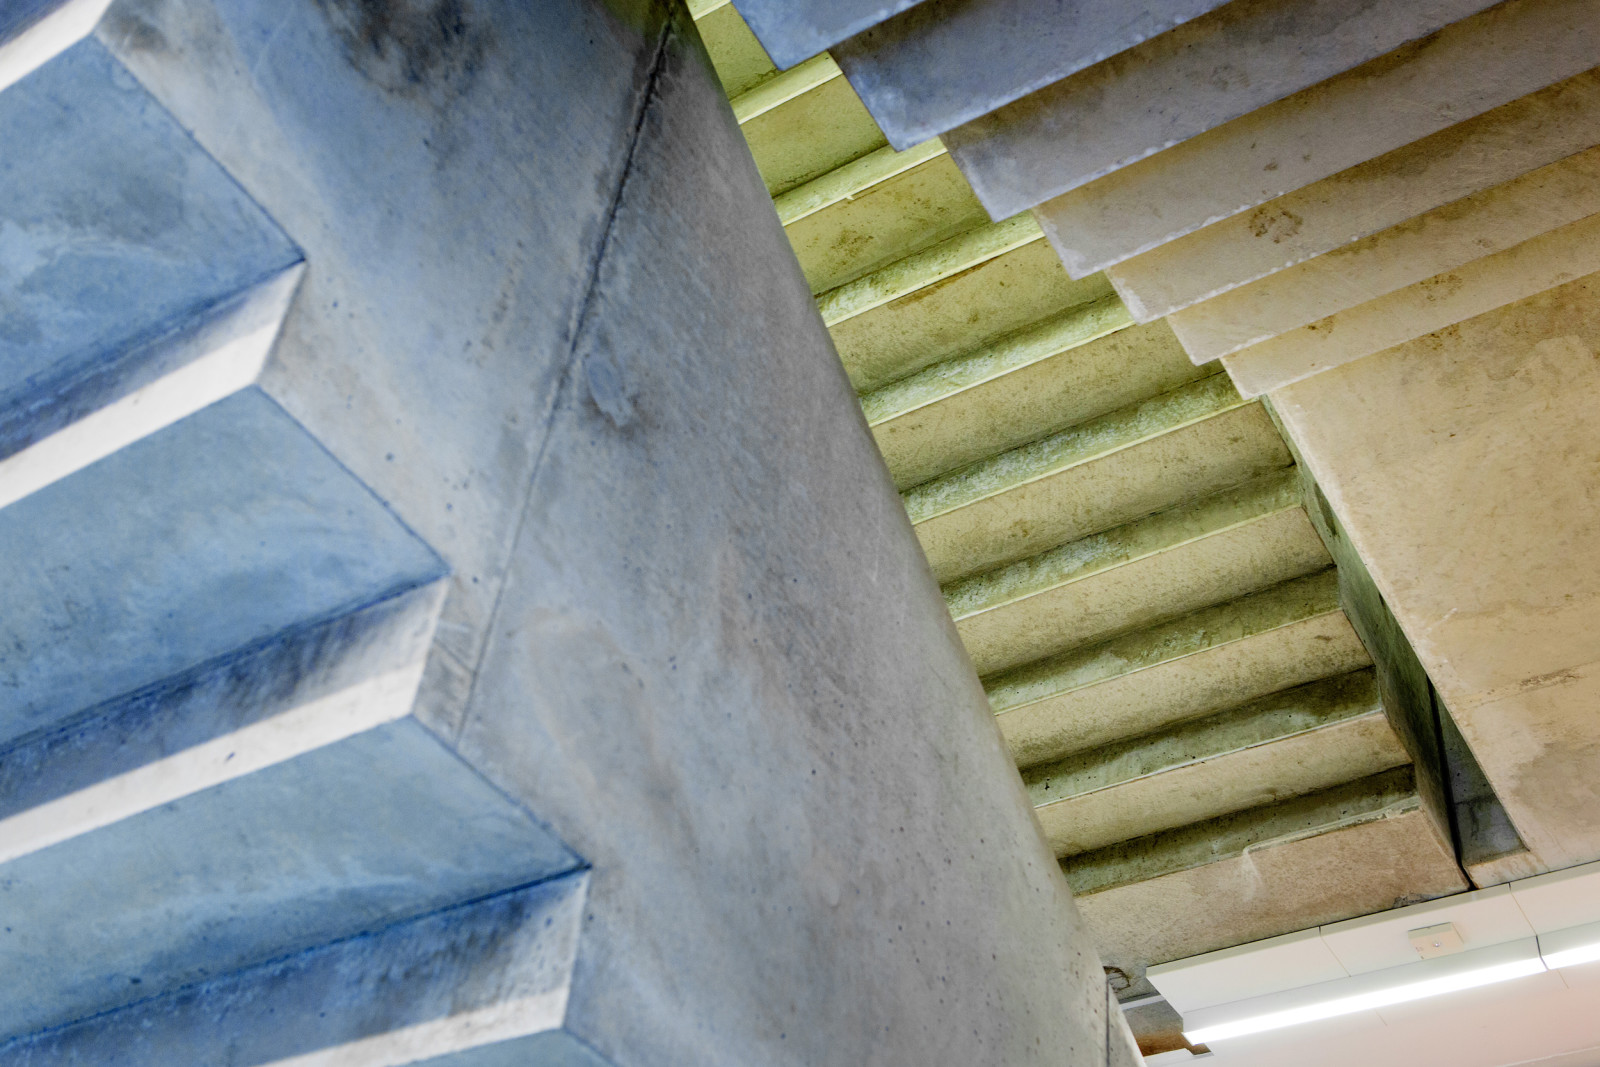 Exposed concrete staircase. © Christian Roth Christensen